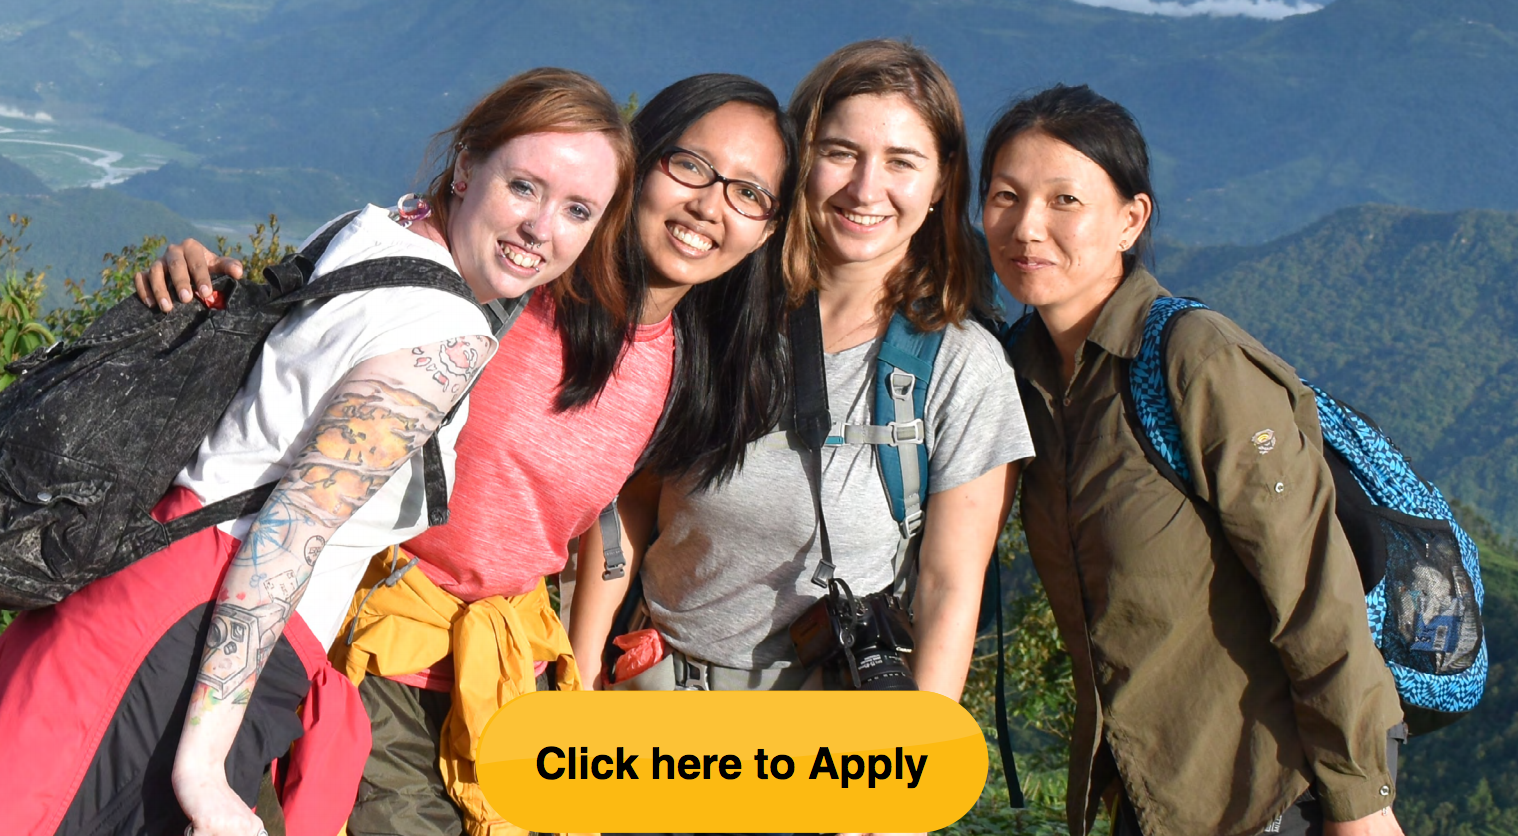 Apply: Hands-on Institute's International Sustainability School 2017 (Scholarships Available)